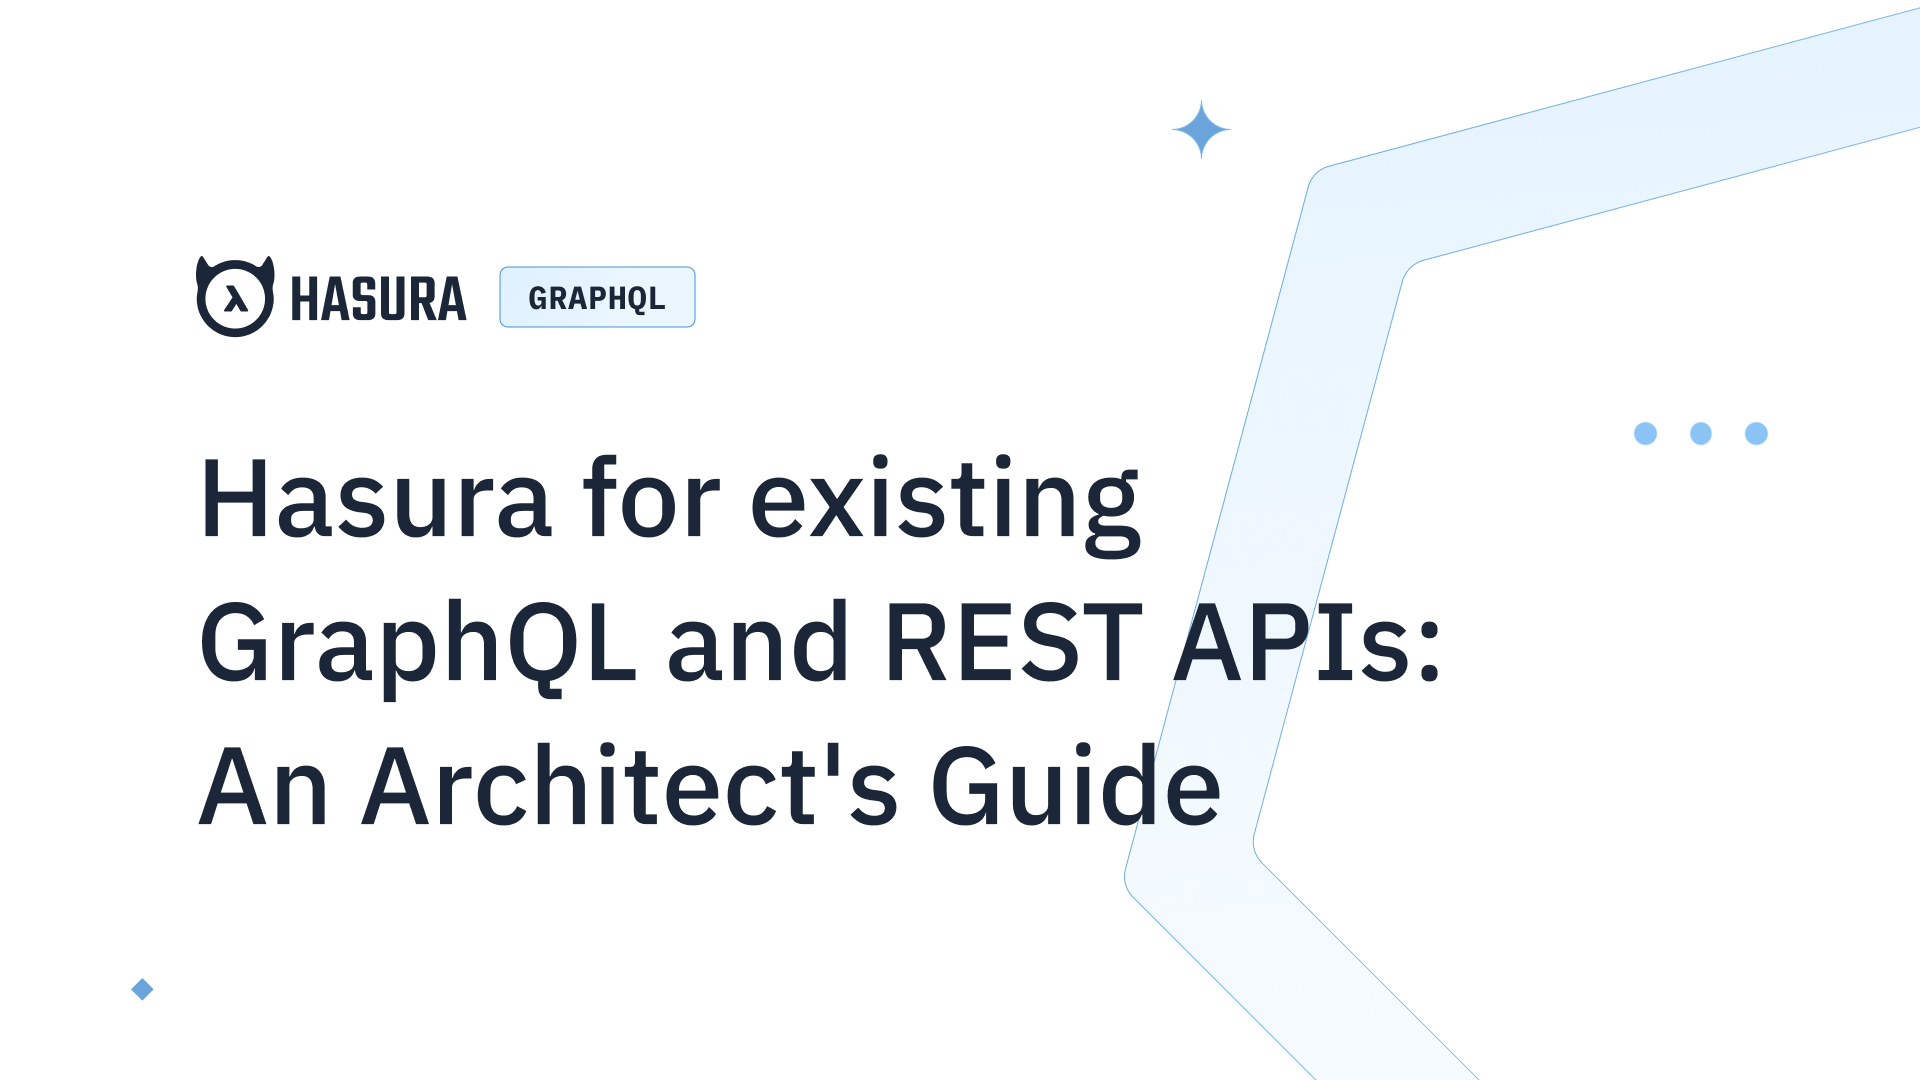 Hasura for existing GraphQL and REST APIs: An Architect's Guide